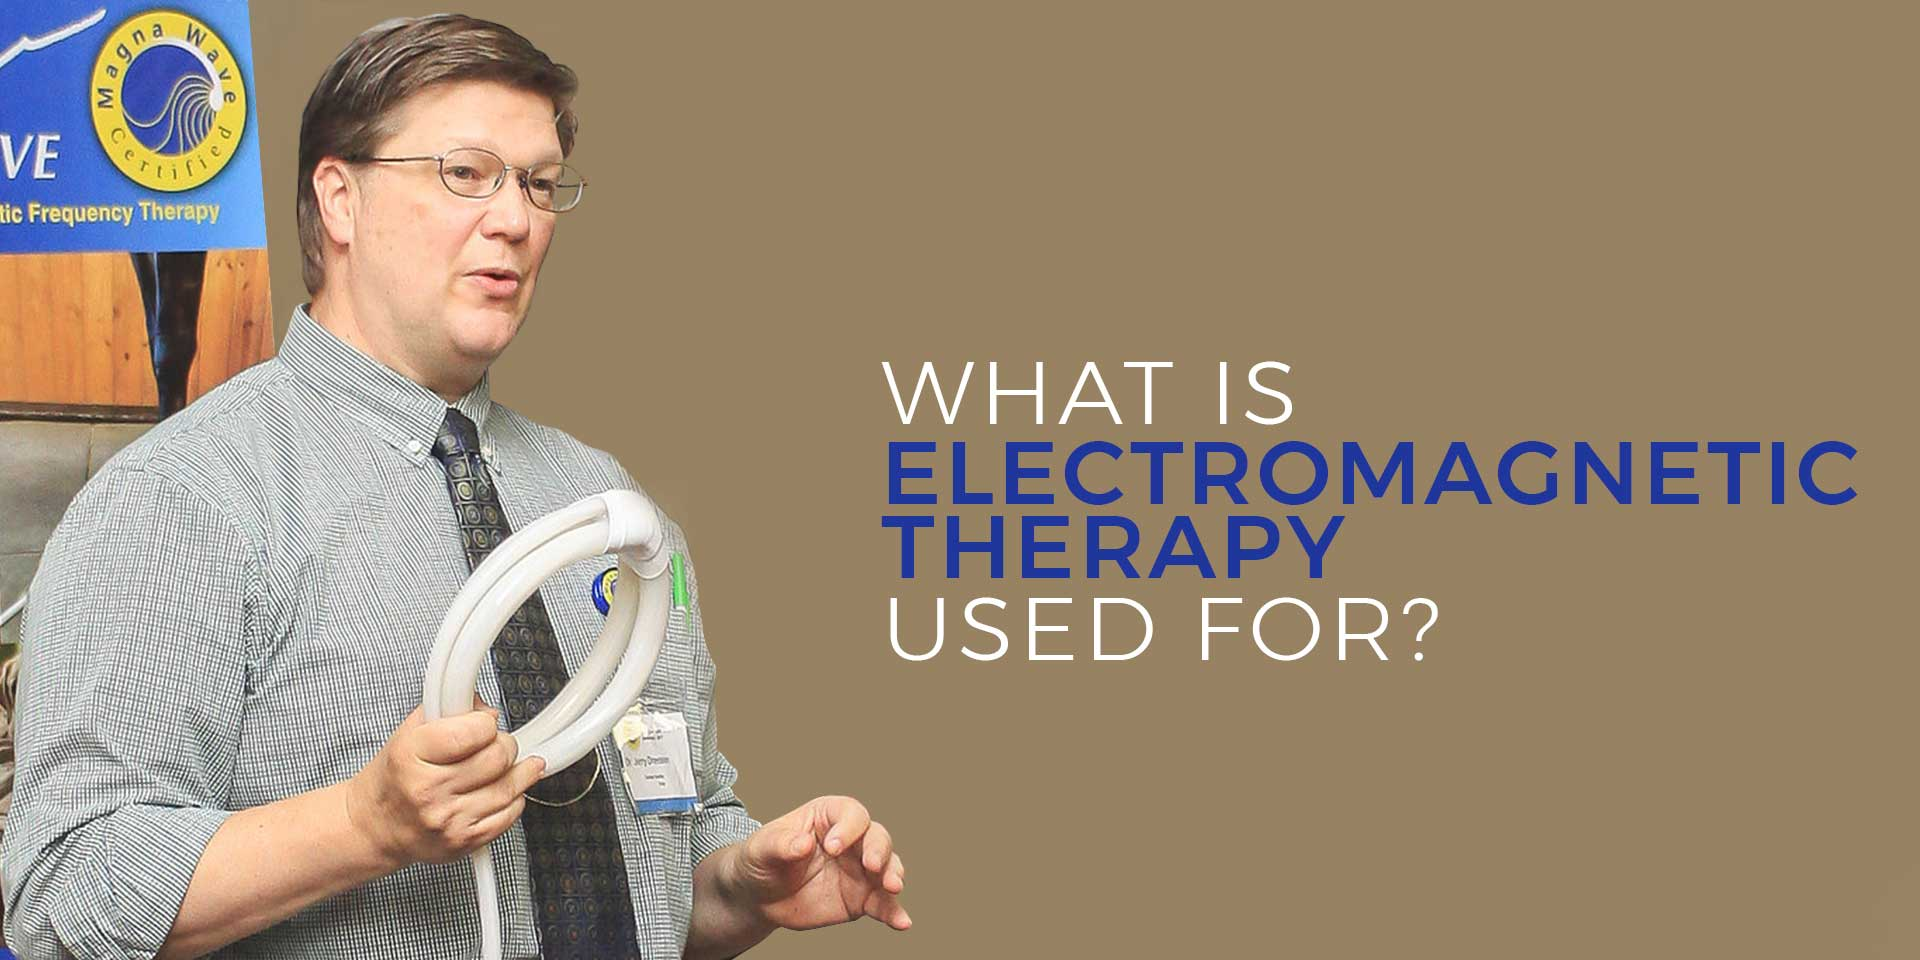 What Is Electromagnetic Therapy Used For?